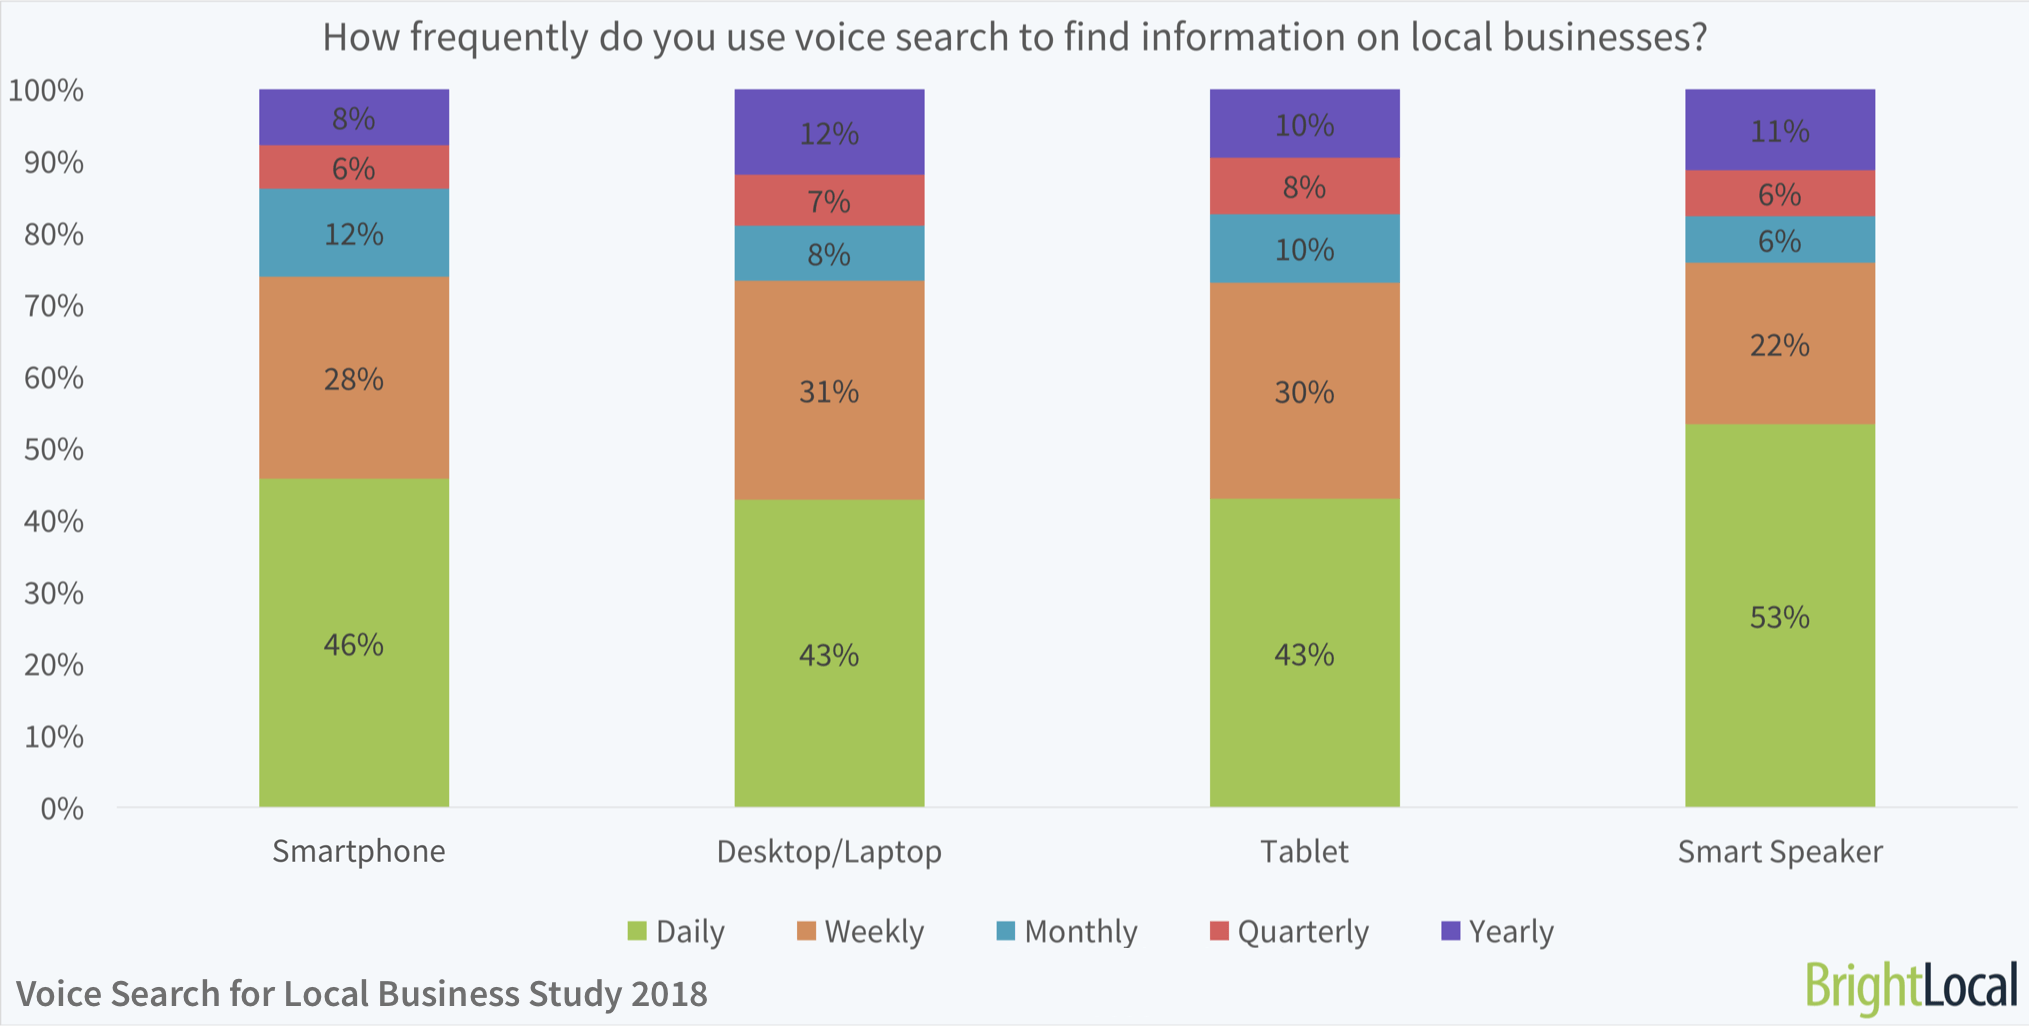 Smart speakers, smartphones, desktop/laptop, tablet: How frequently do you use voice search to find information on local businesses? | BrightLocal Voice Search for Local Business Study